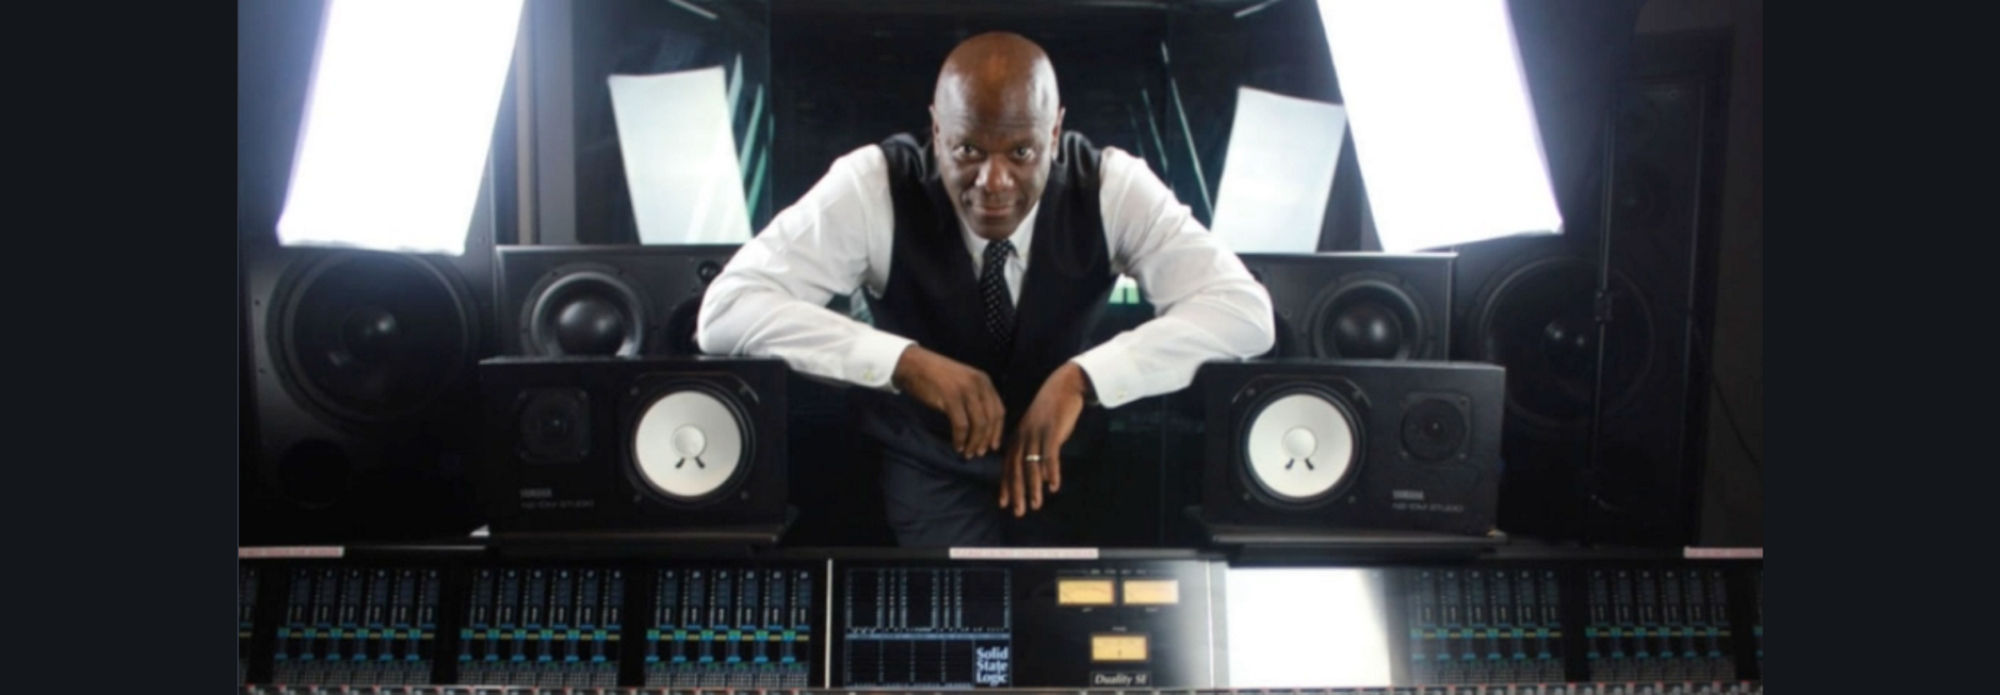 Prince Charles Alexander, GRAMMY-winning record producer and audio engineer